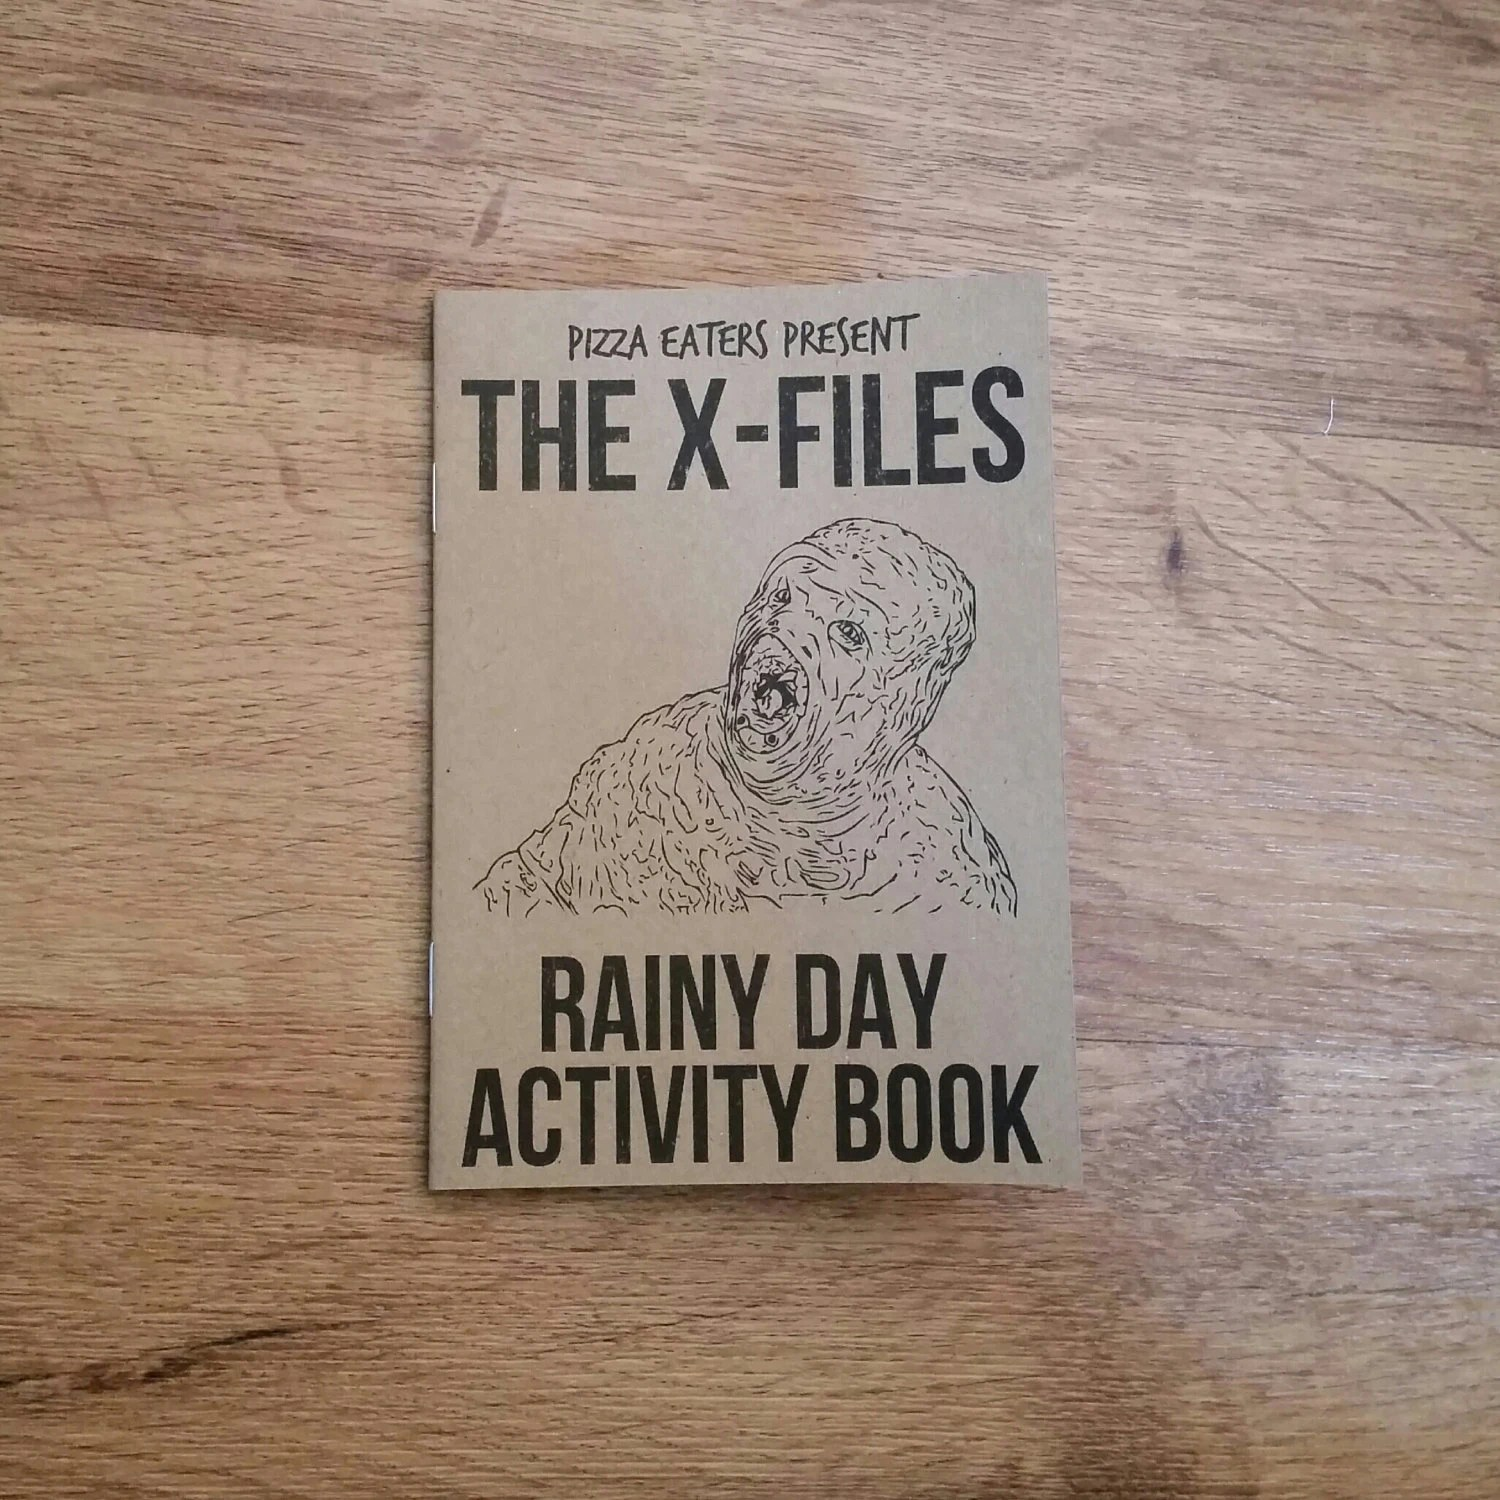 The X Files Rainy Day Colouring Amp Activity Book By Pizzaeaters